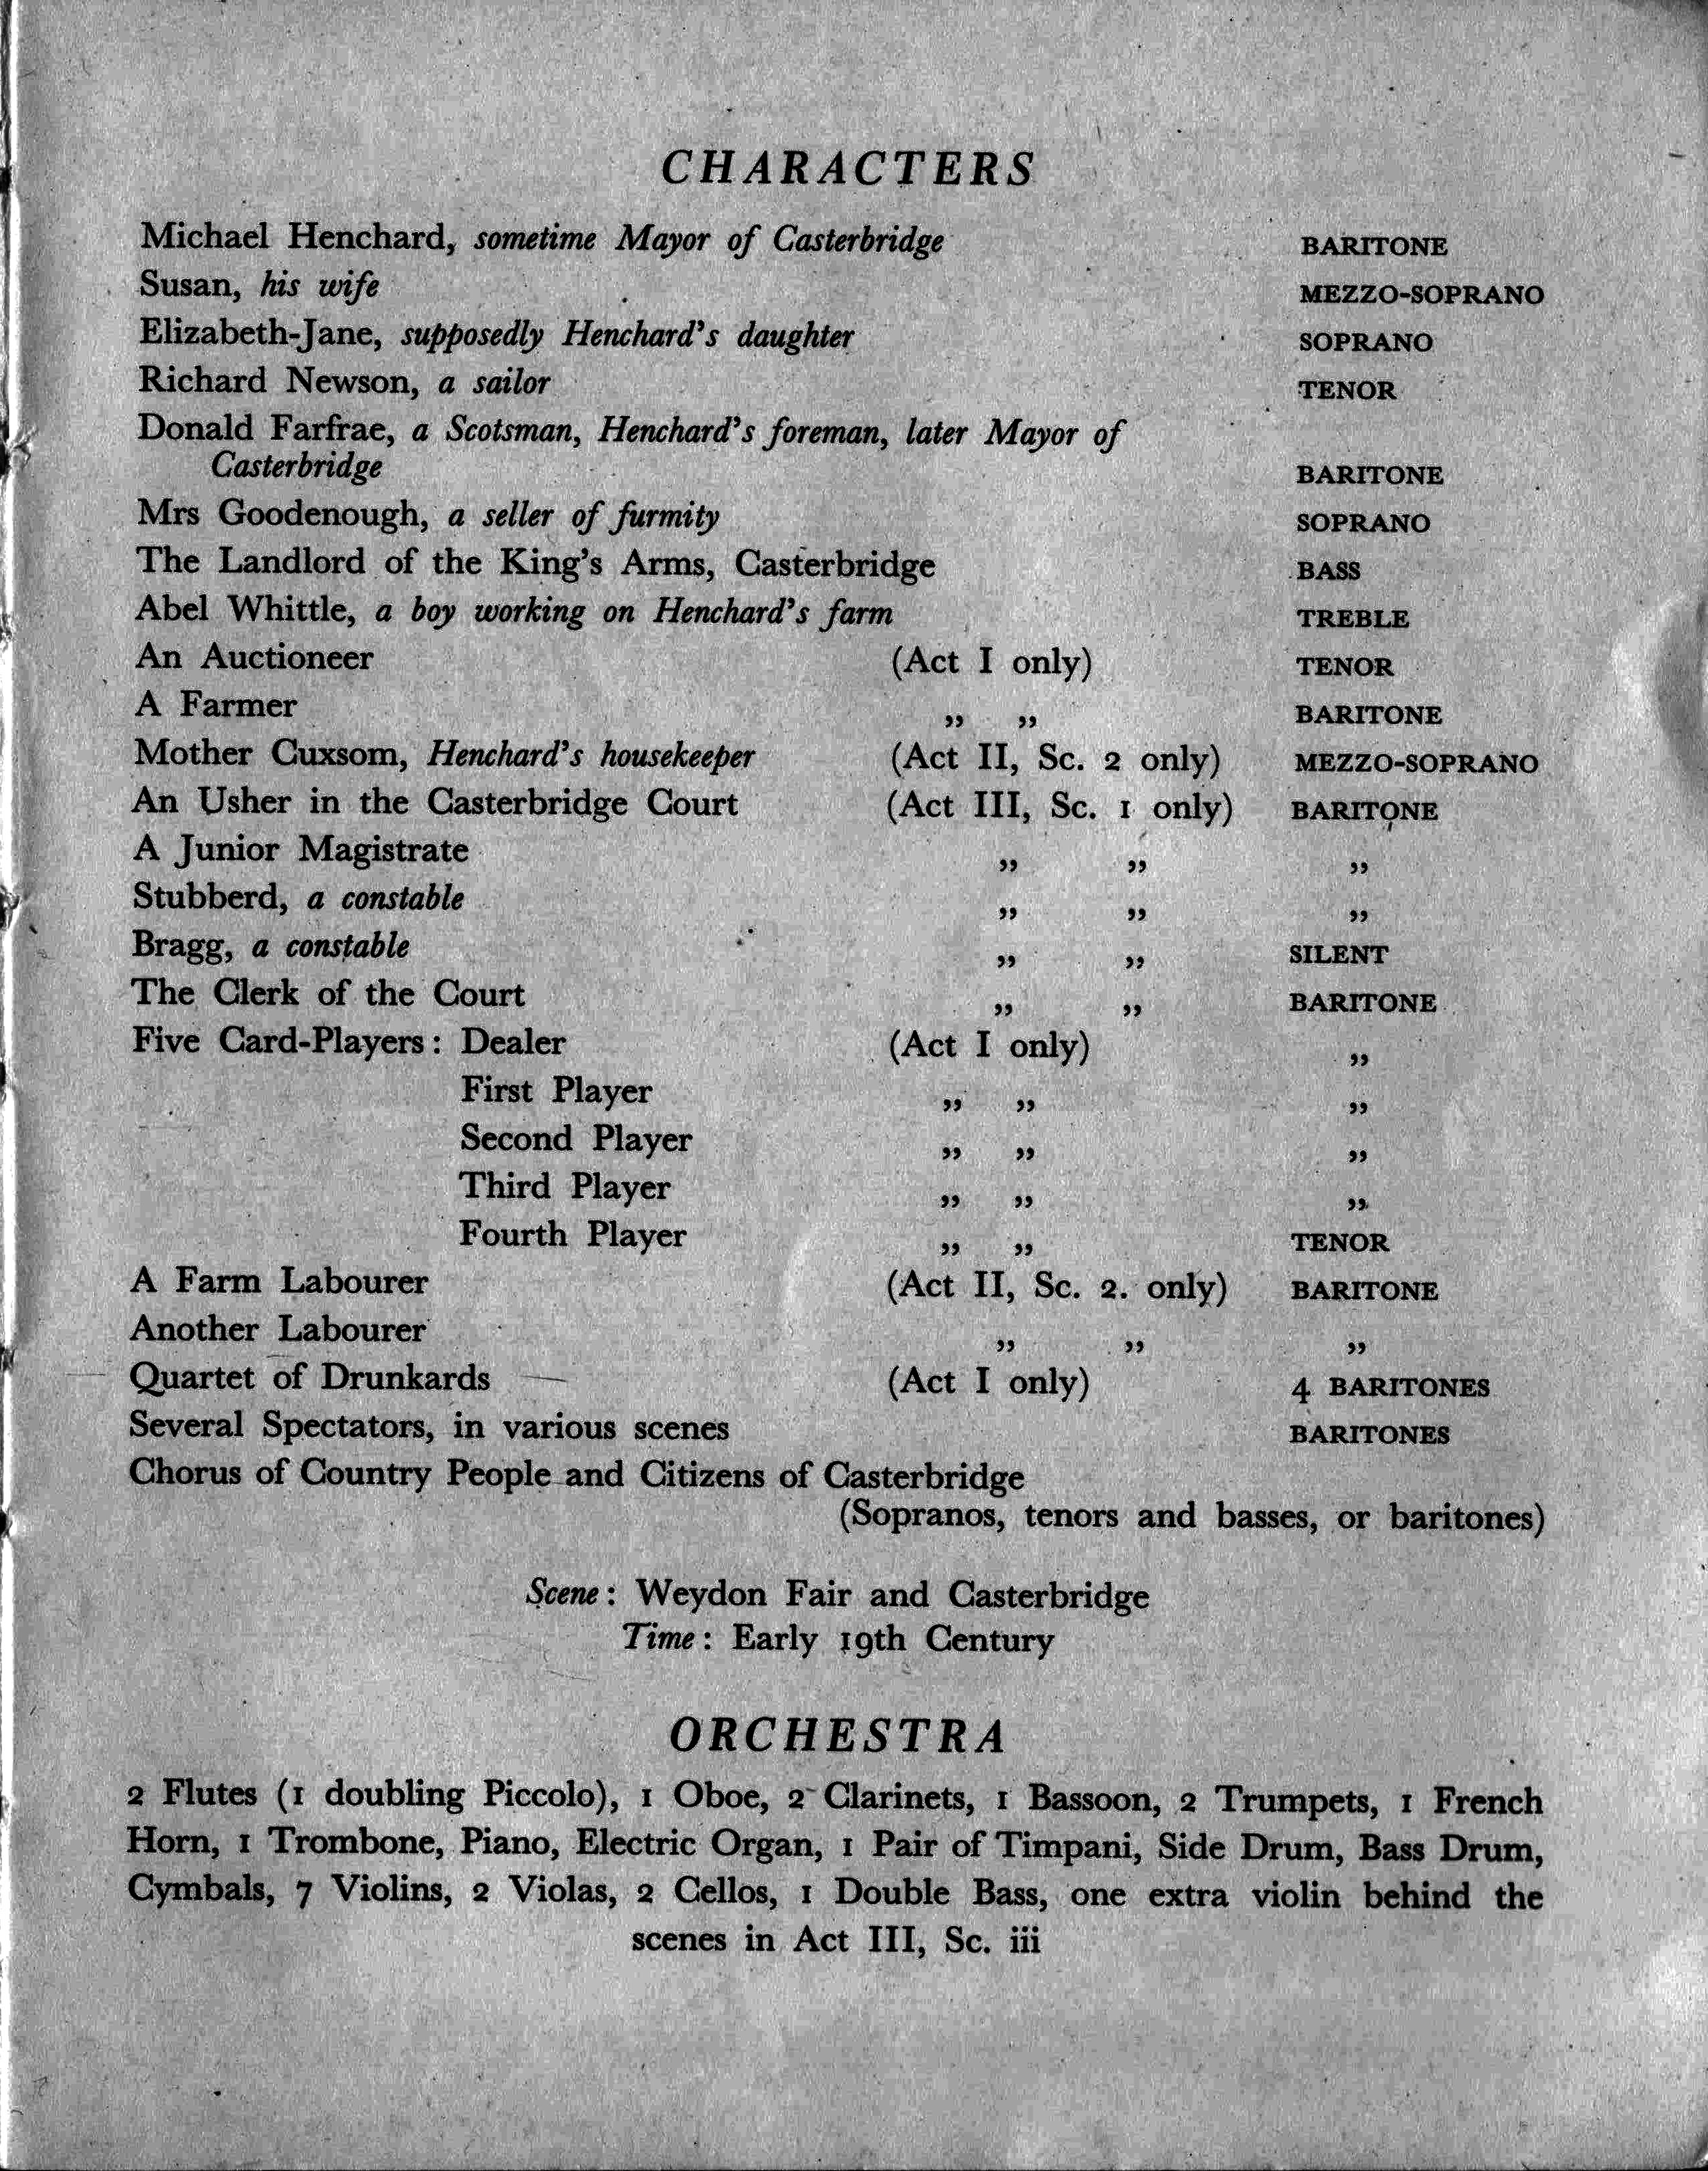 List of characters from the vocal score of The Mayor of Casterbridge, original edition, 1951